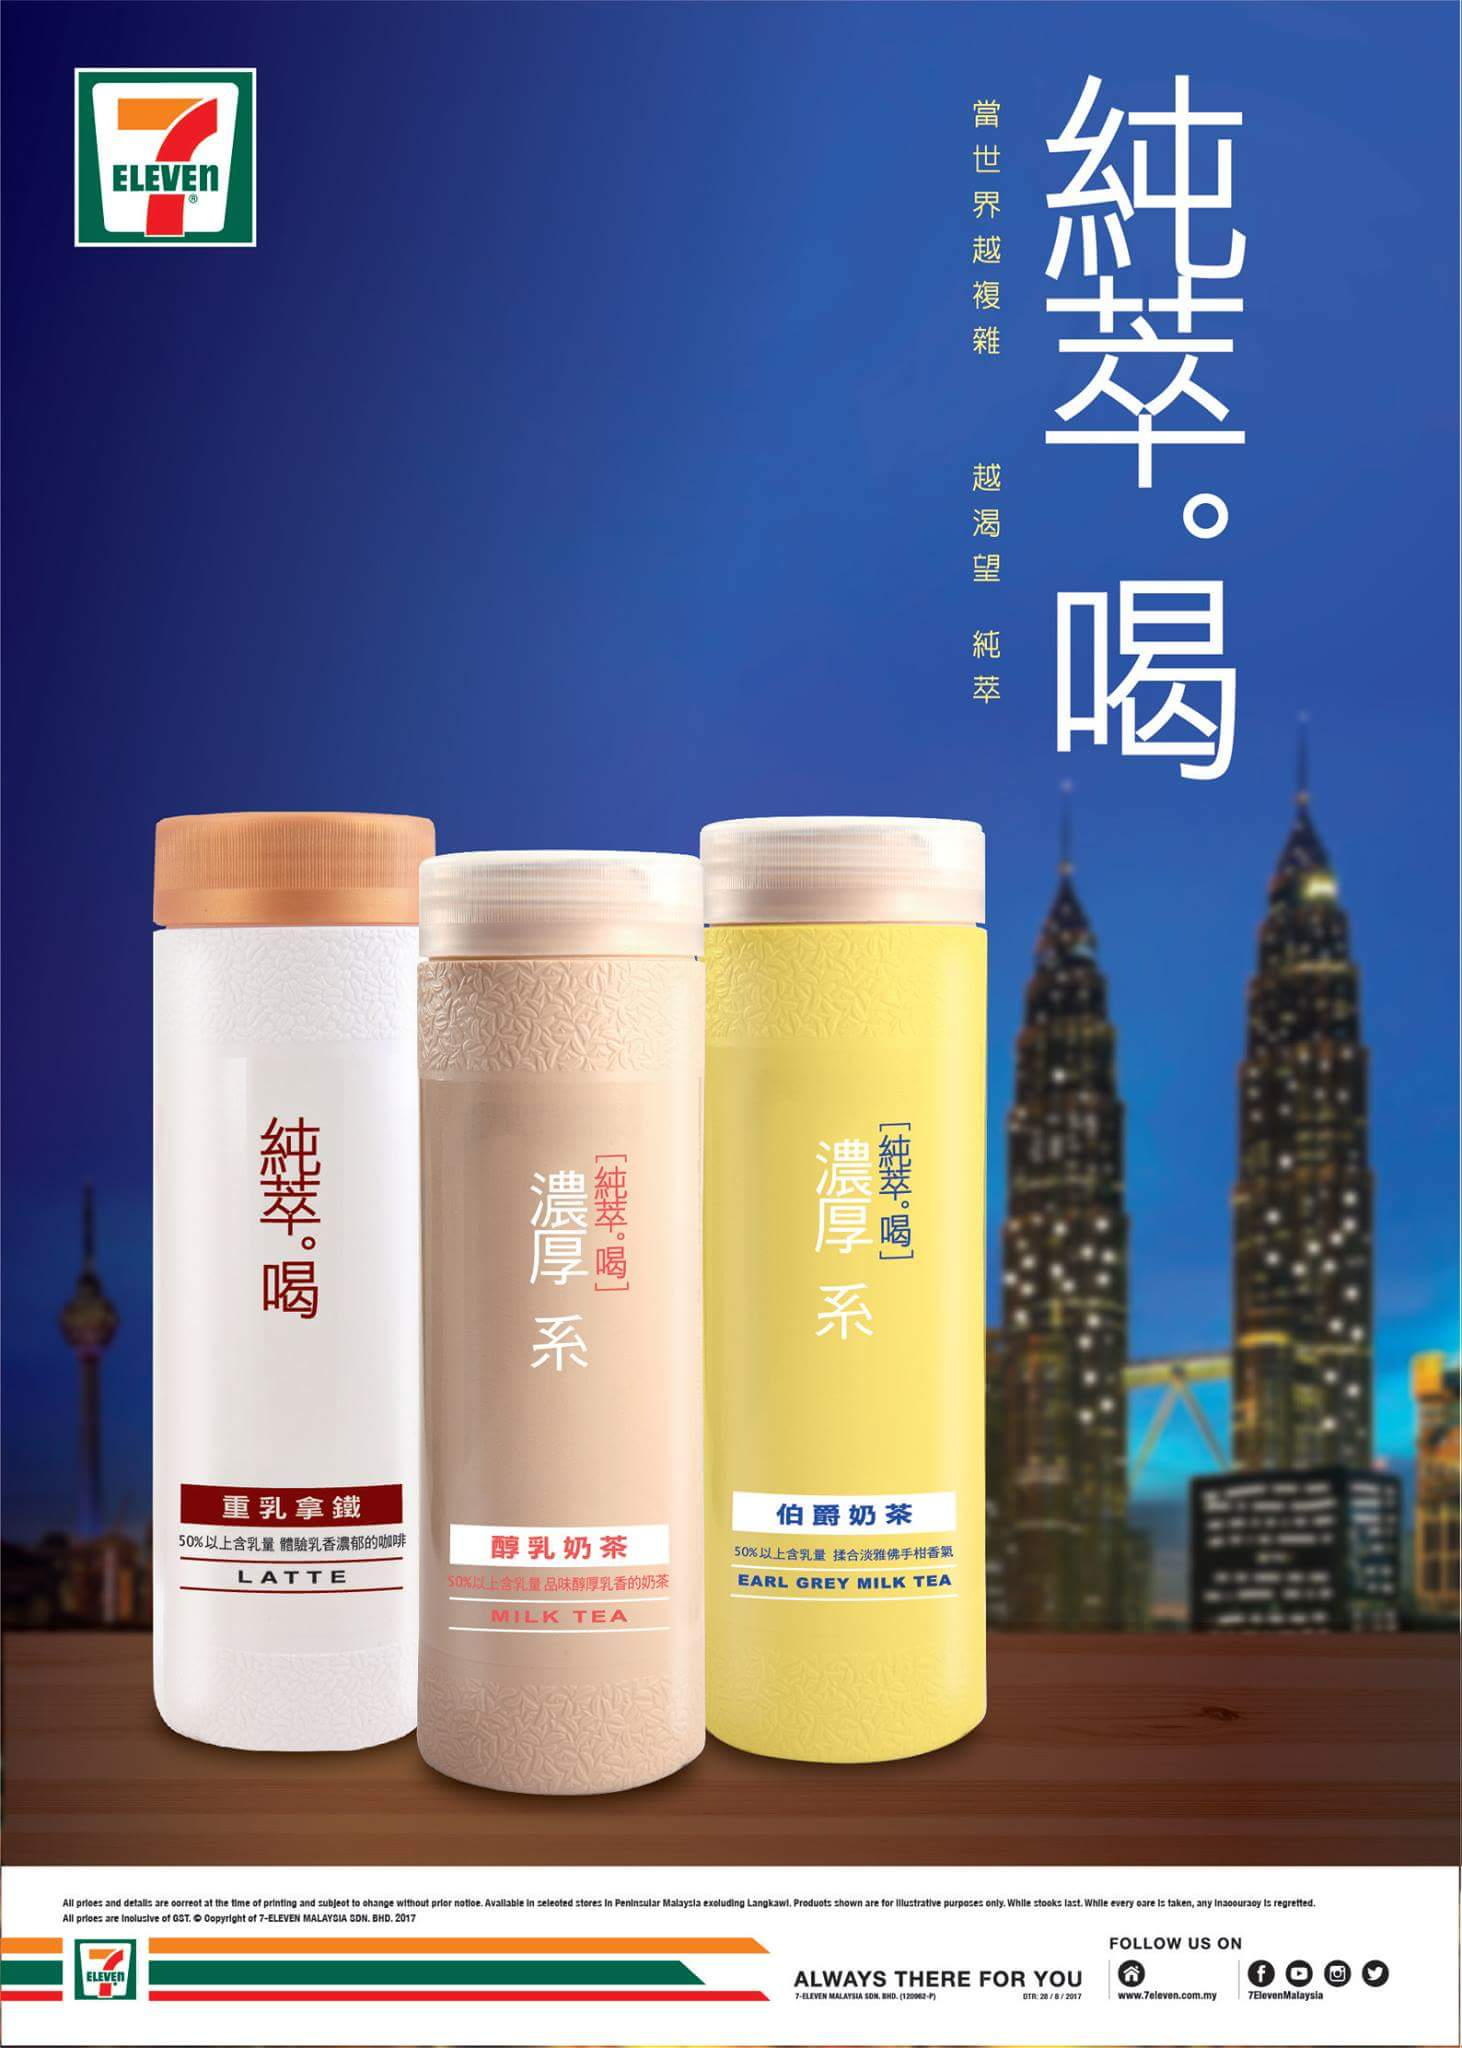 7-Eleven Malaysia now sells famous Taiwanese beverage